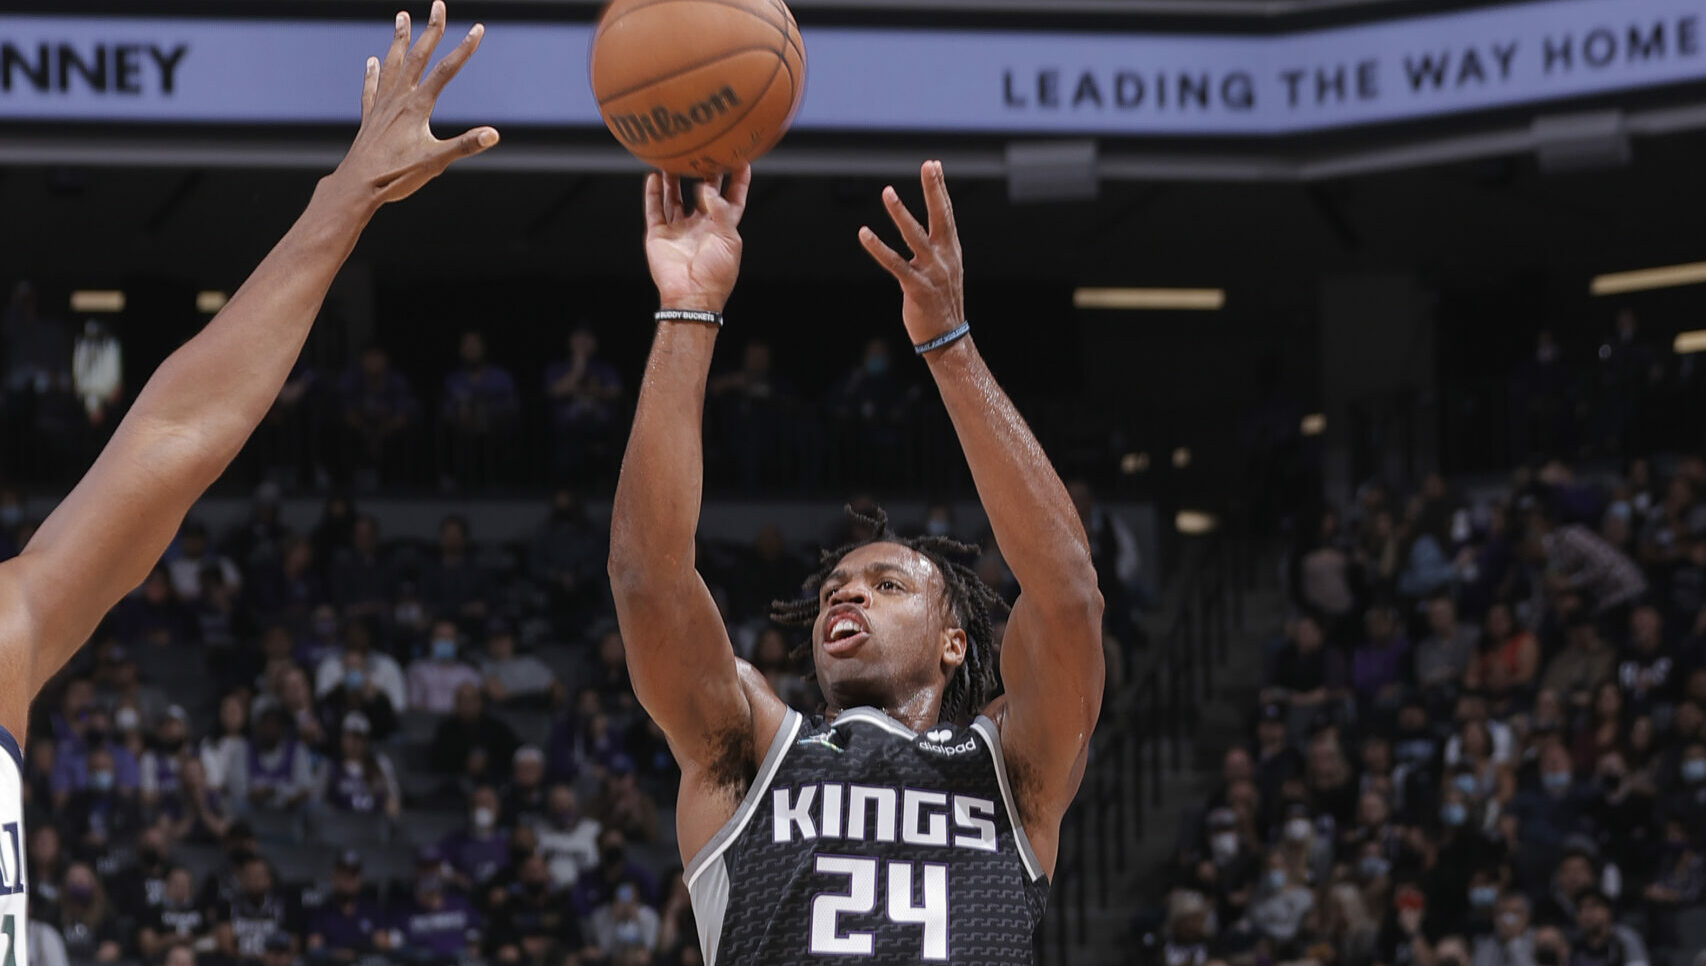 Buddy Hield passes Peja Stojakovic for most made 3s in Kings franchise history